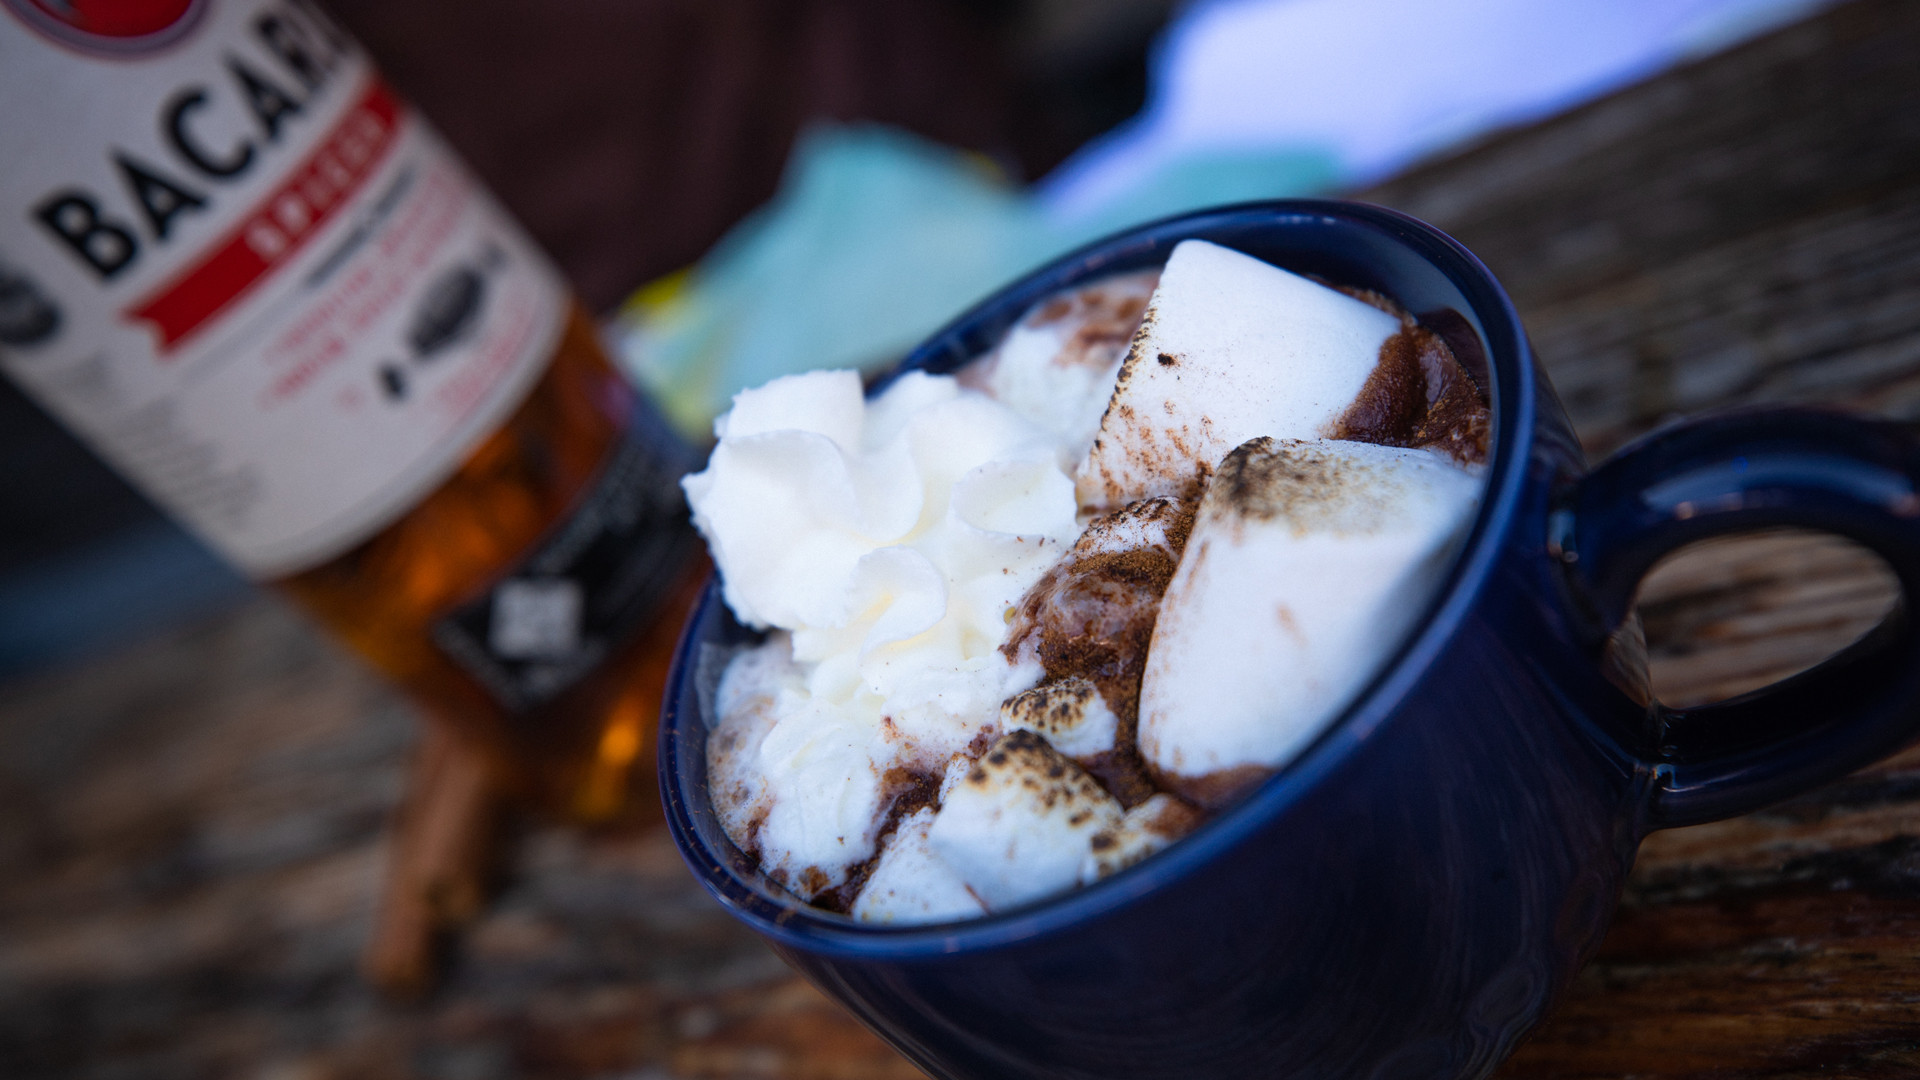 The best new restaurants in Toronto | A hot choco-latte with toasted marshmallows at Parkette